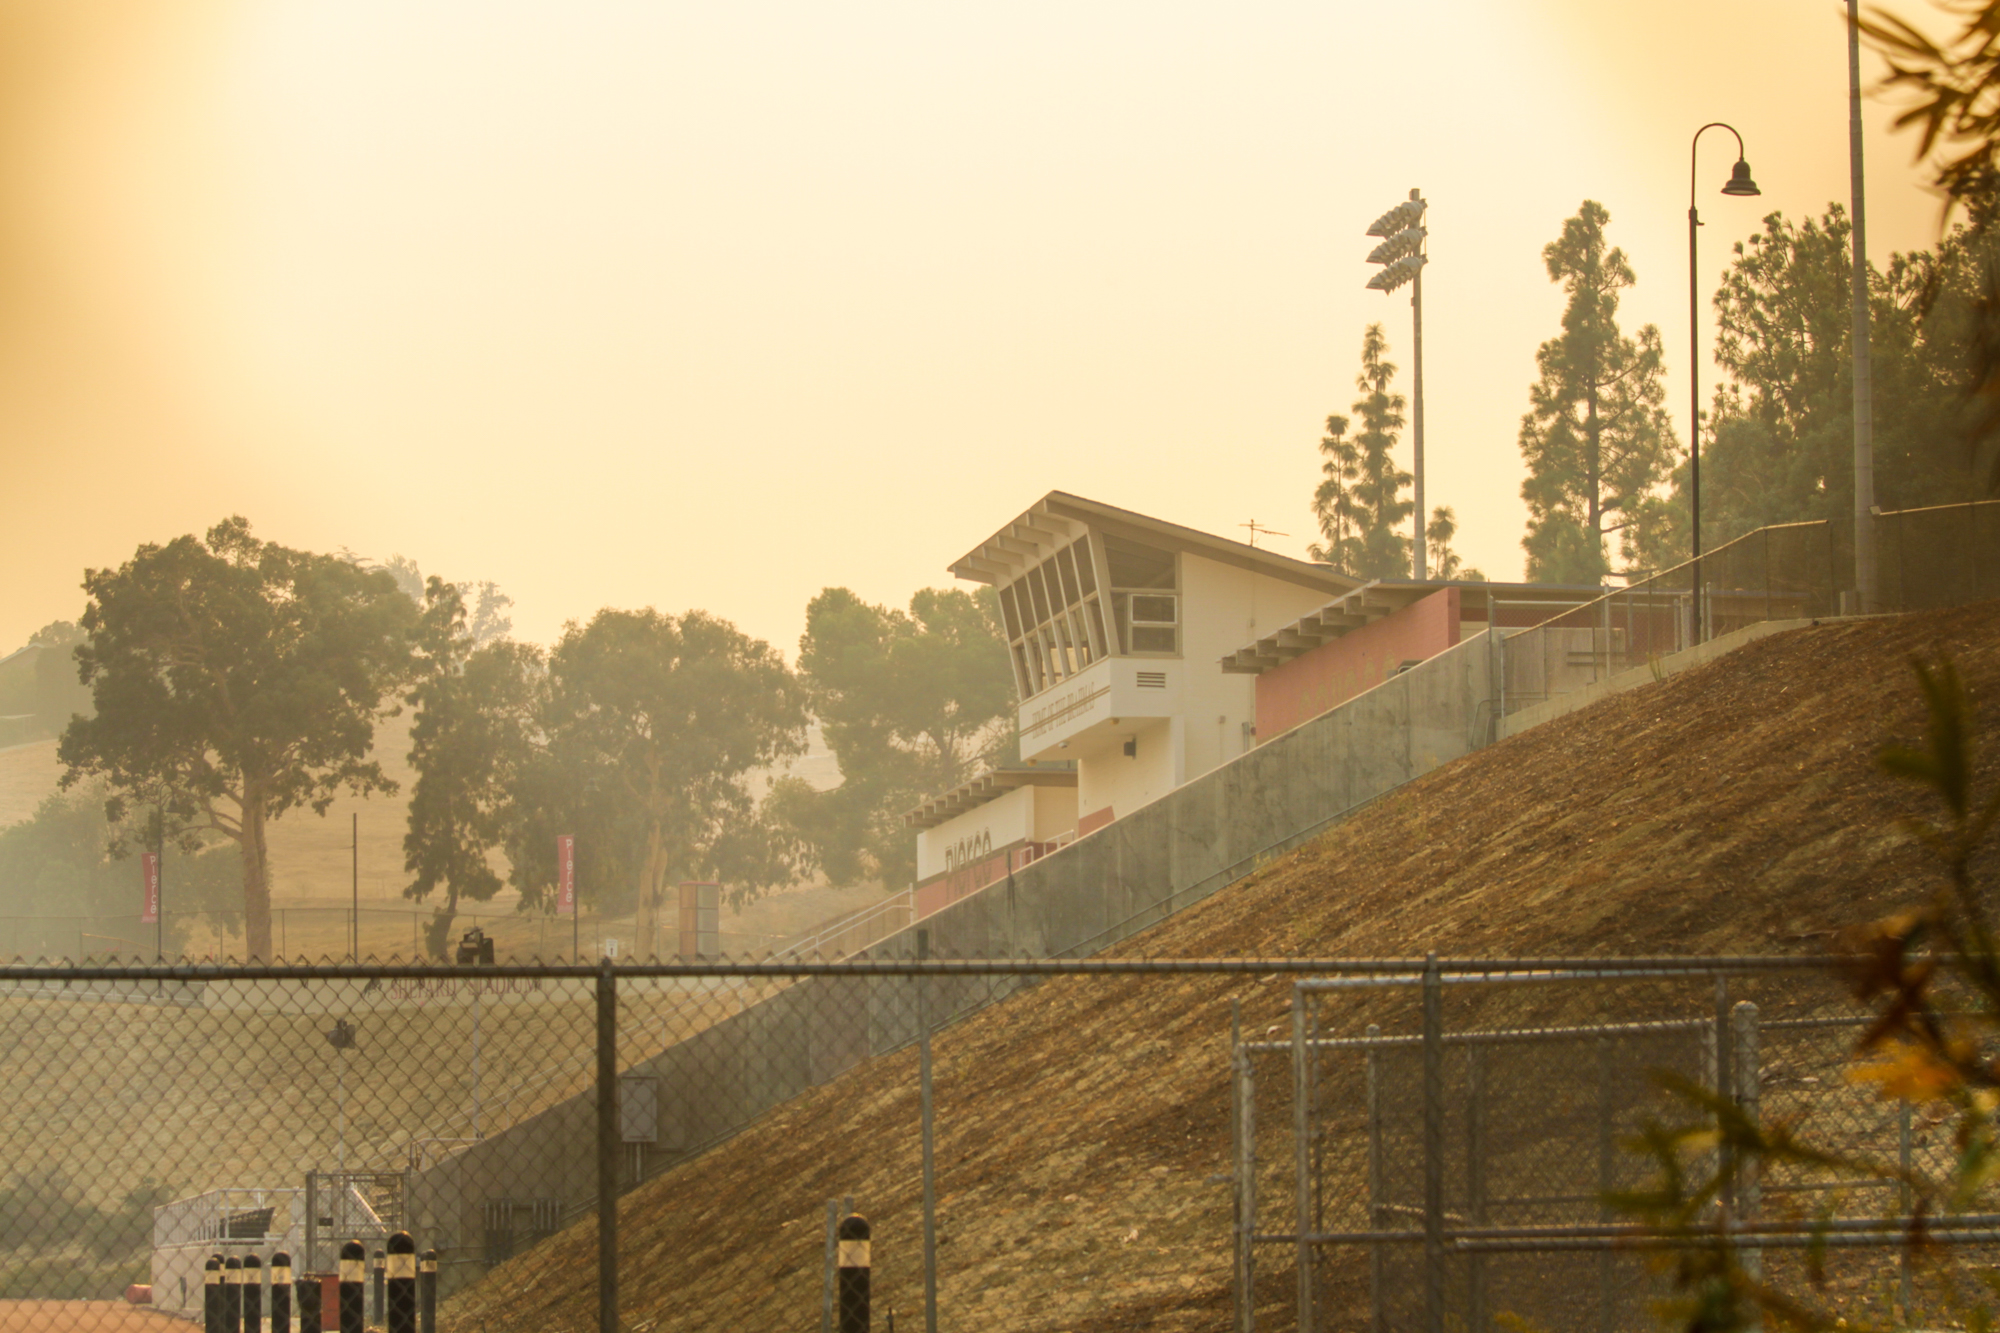 Air quality delays sporting events